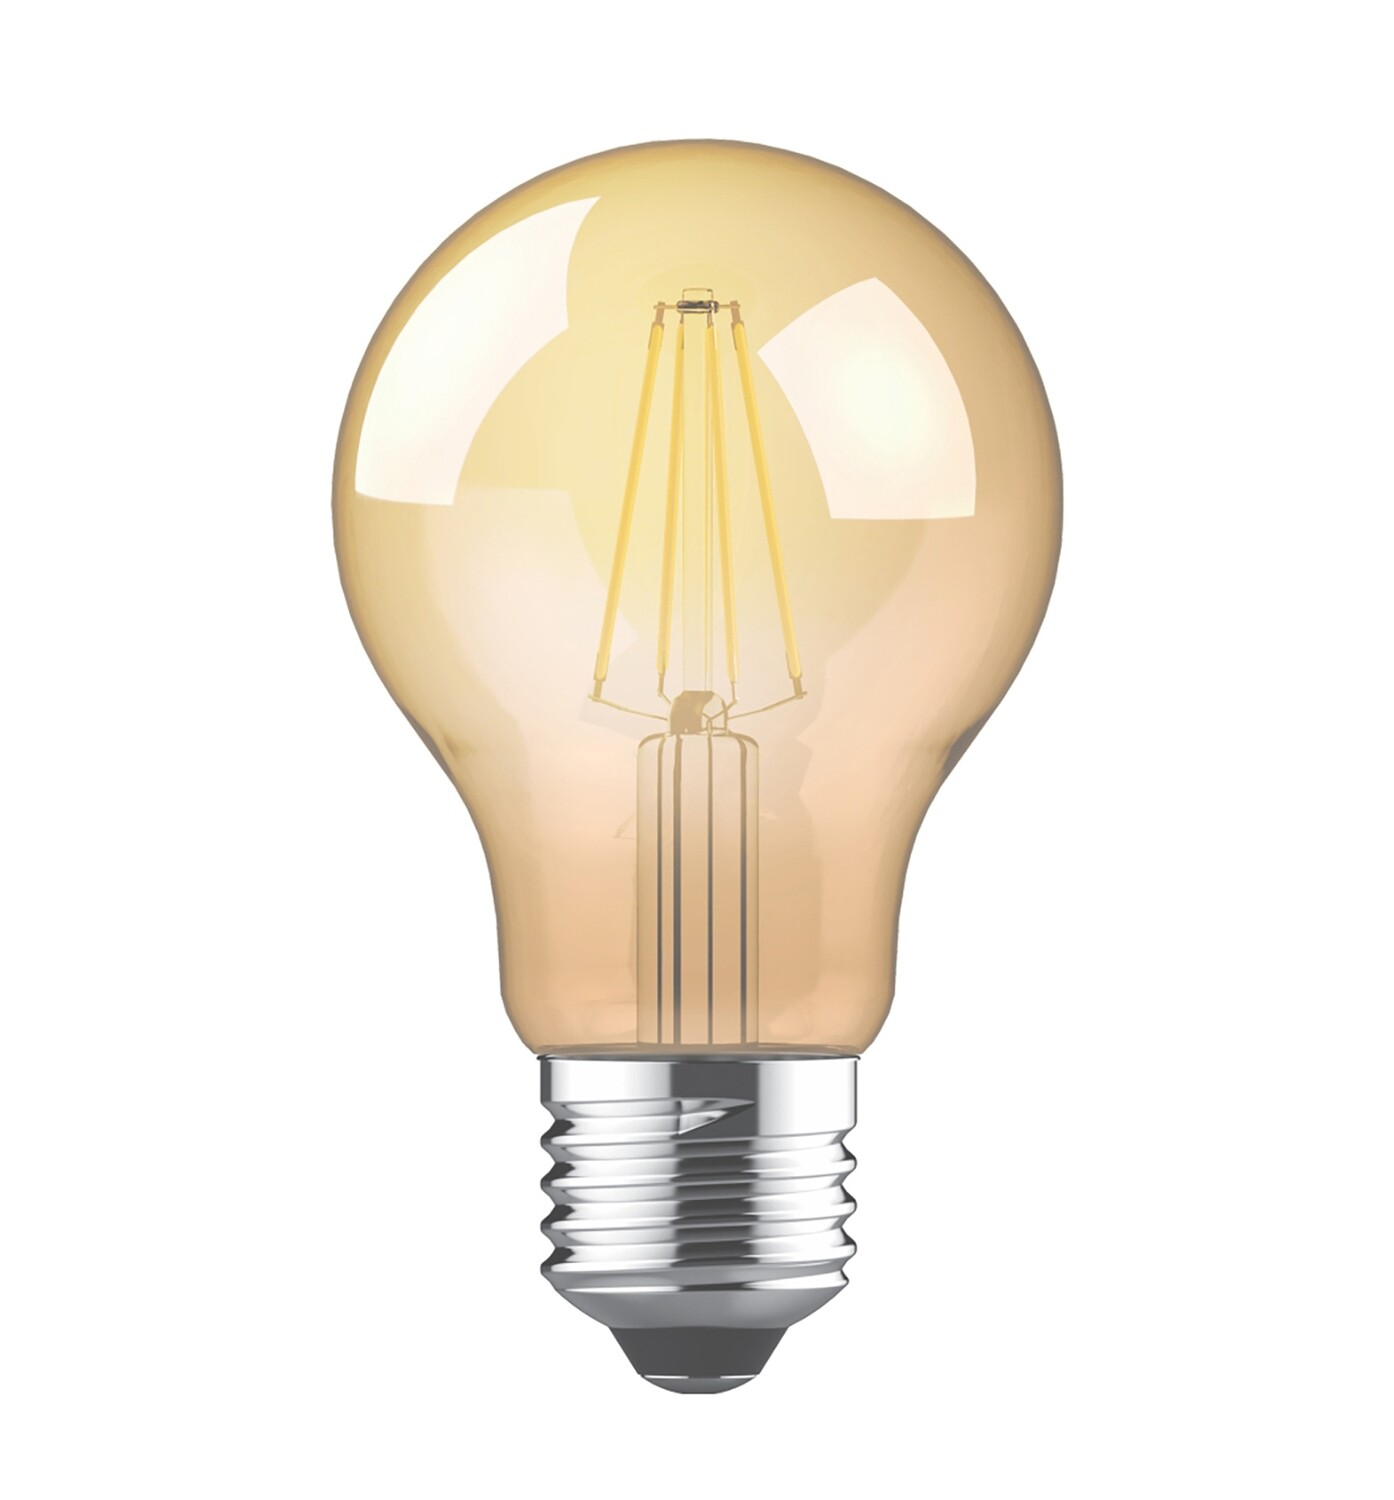 Value Vintage LED GLS E27 230V 4W 2200K, 330lm, Amber Finish